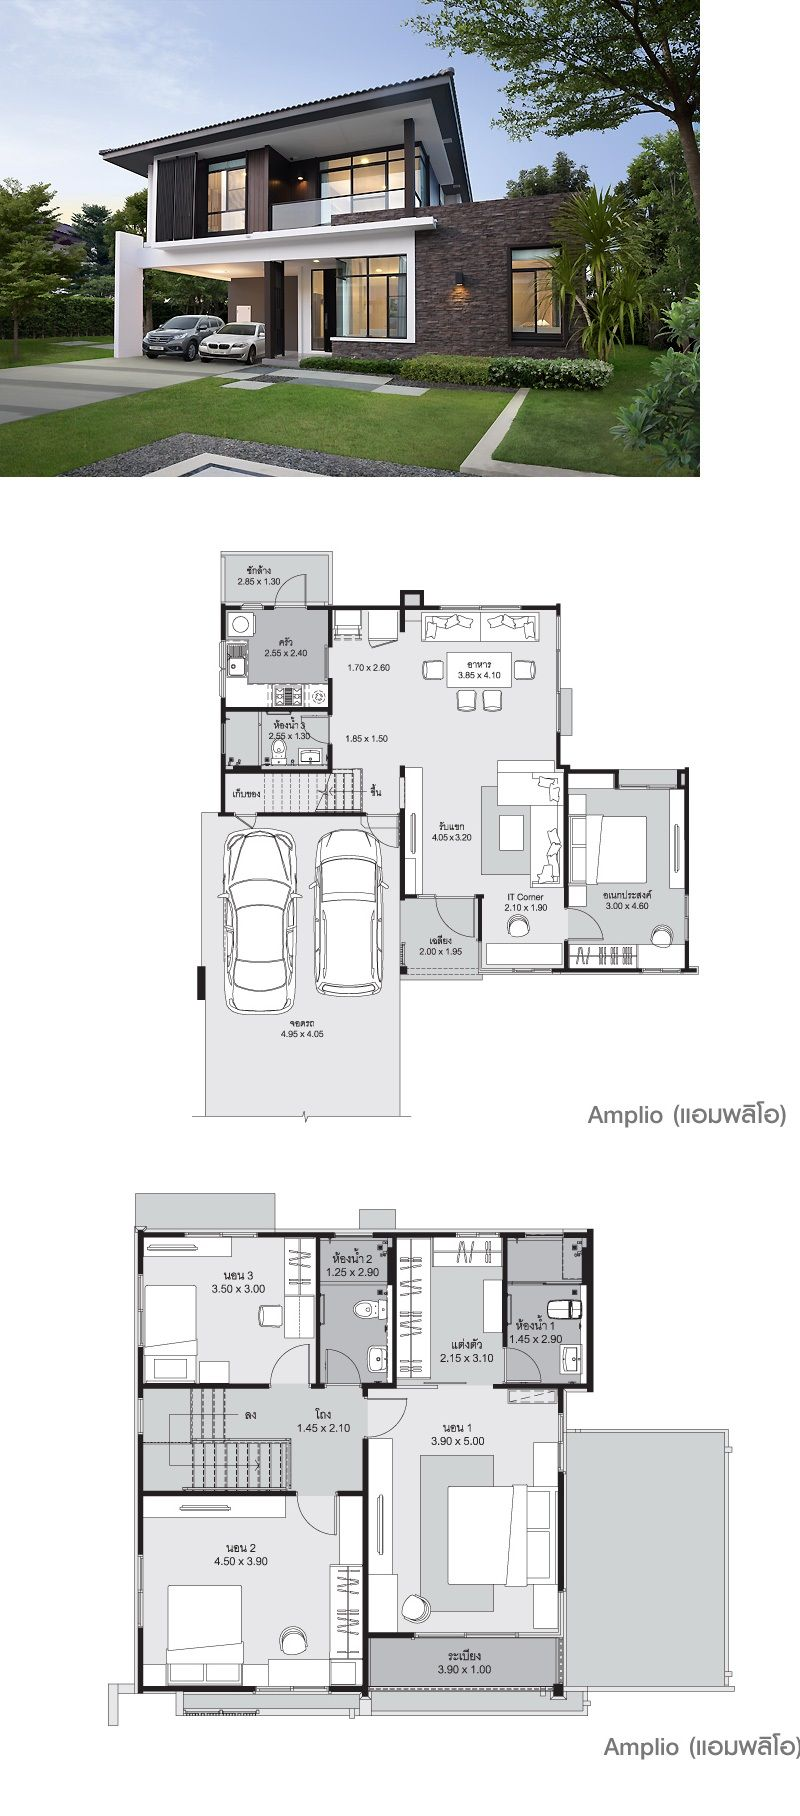 147 modern house plan designs free download | modern house plans